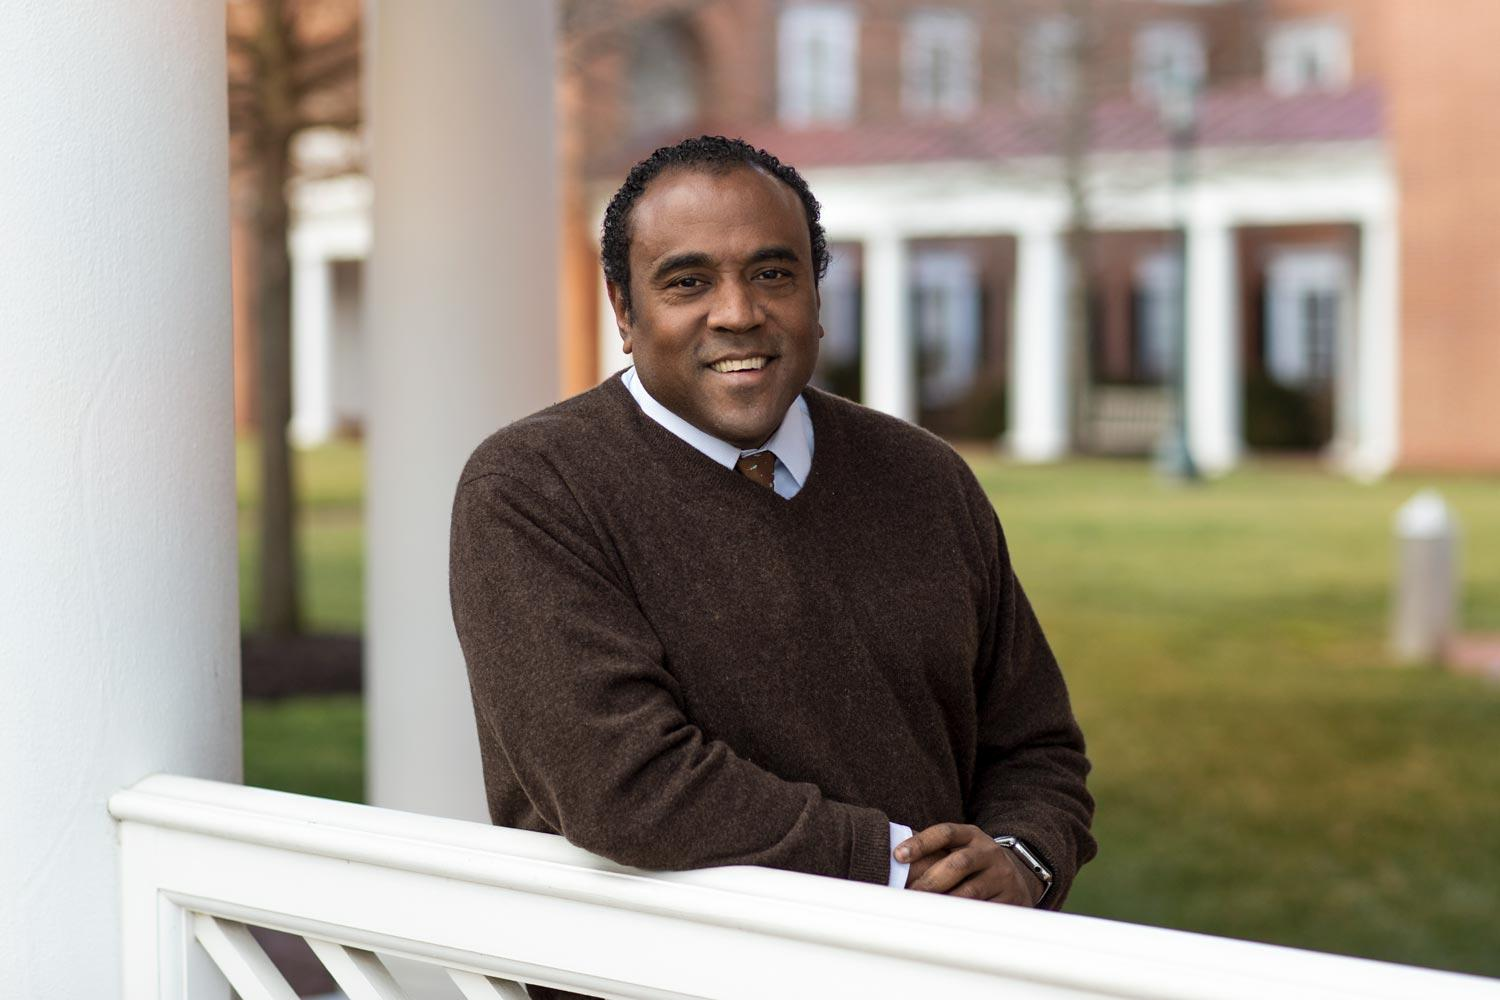 Gregory B. Fairchild is the Isidore Horween Research Professor of Business Administration at Darden and the associate dean for Washington D.C. area initiatives.